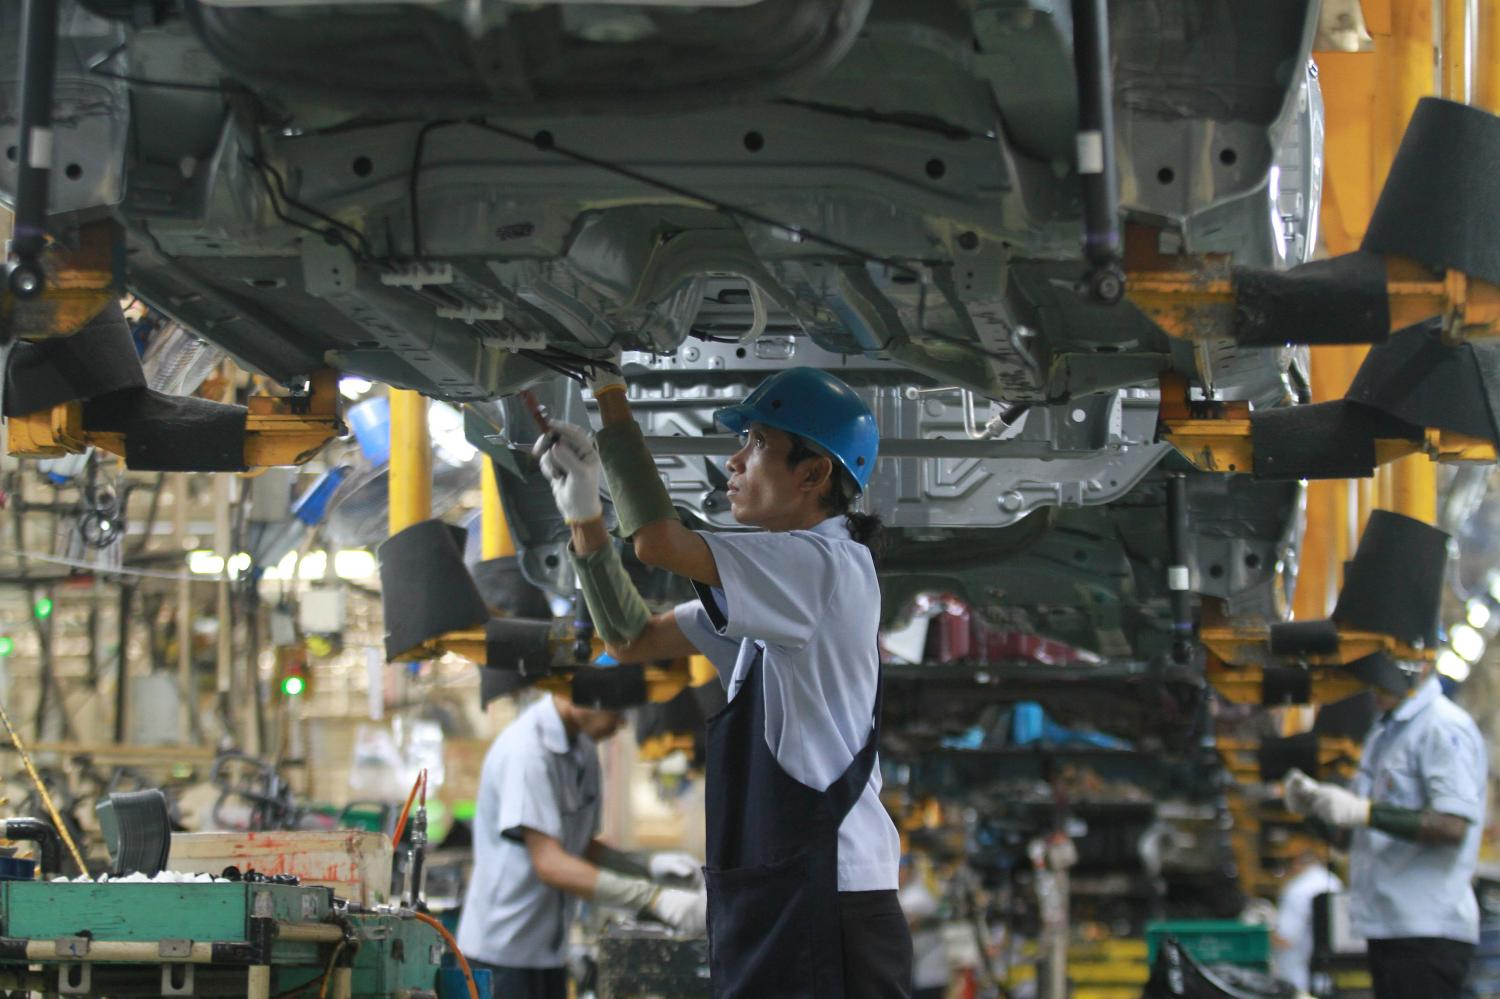 Workers assemble a car at a Mitsubishi plant in Laem Chabang Industrial Estate in Chon Buri. (Photo by Somchai Poomlard)